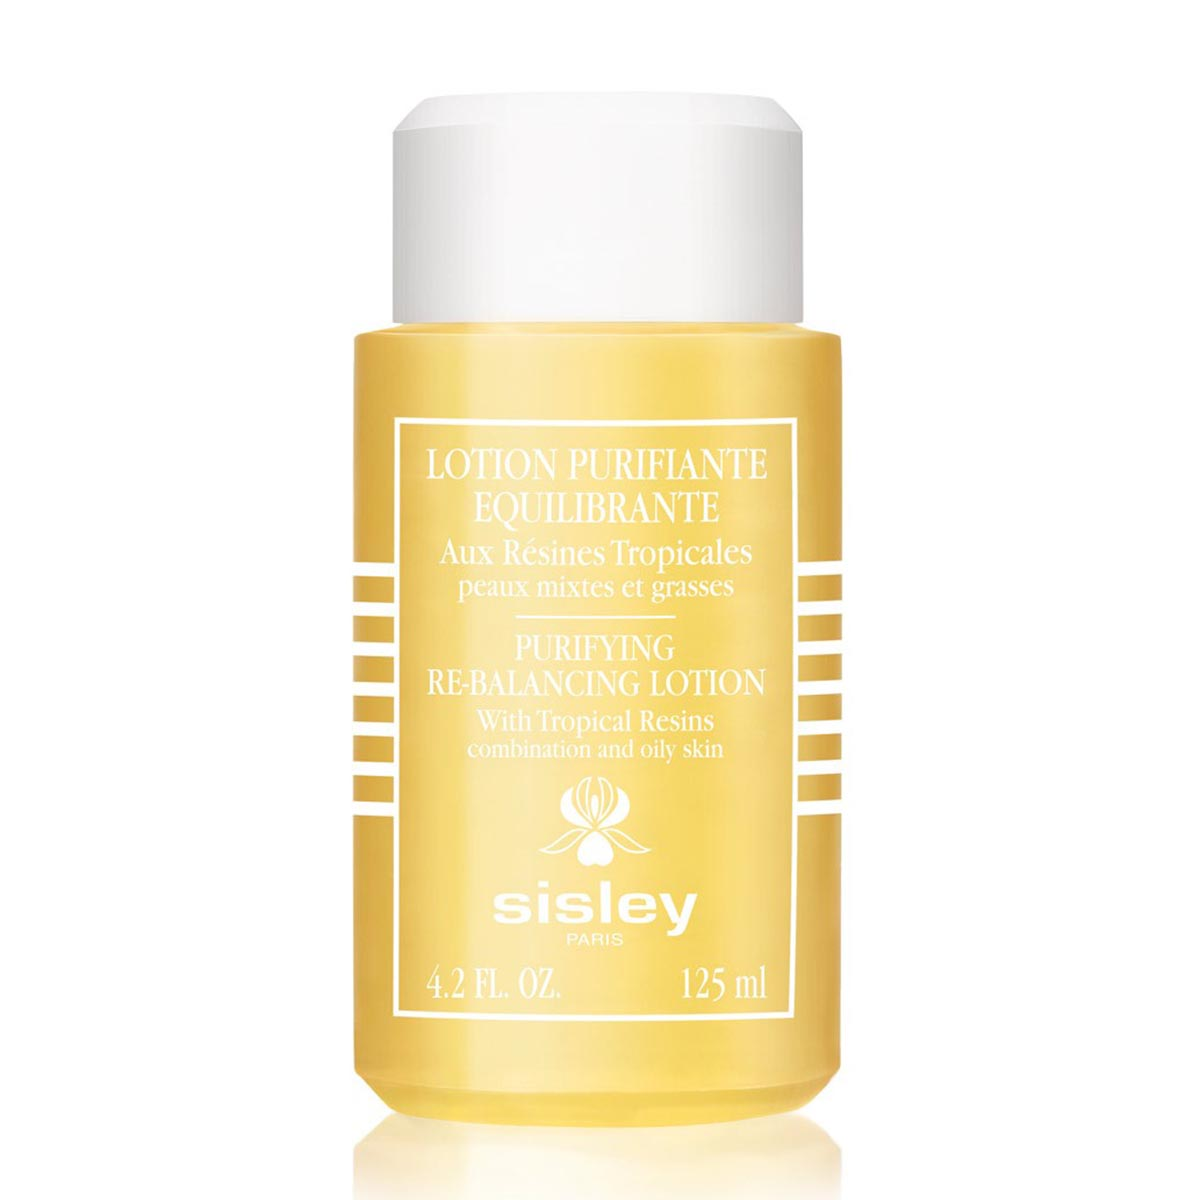 Sisley lotion purifying re balancing lotion with tropical resins 125ml